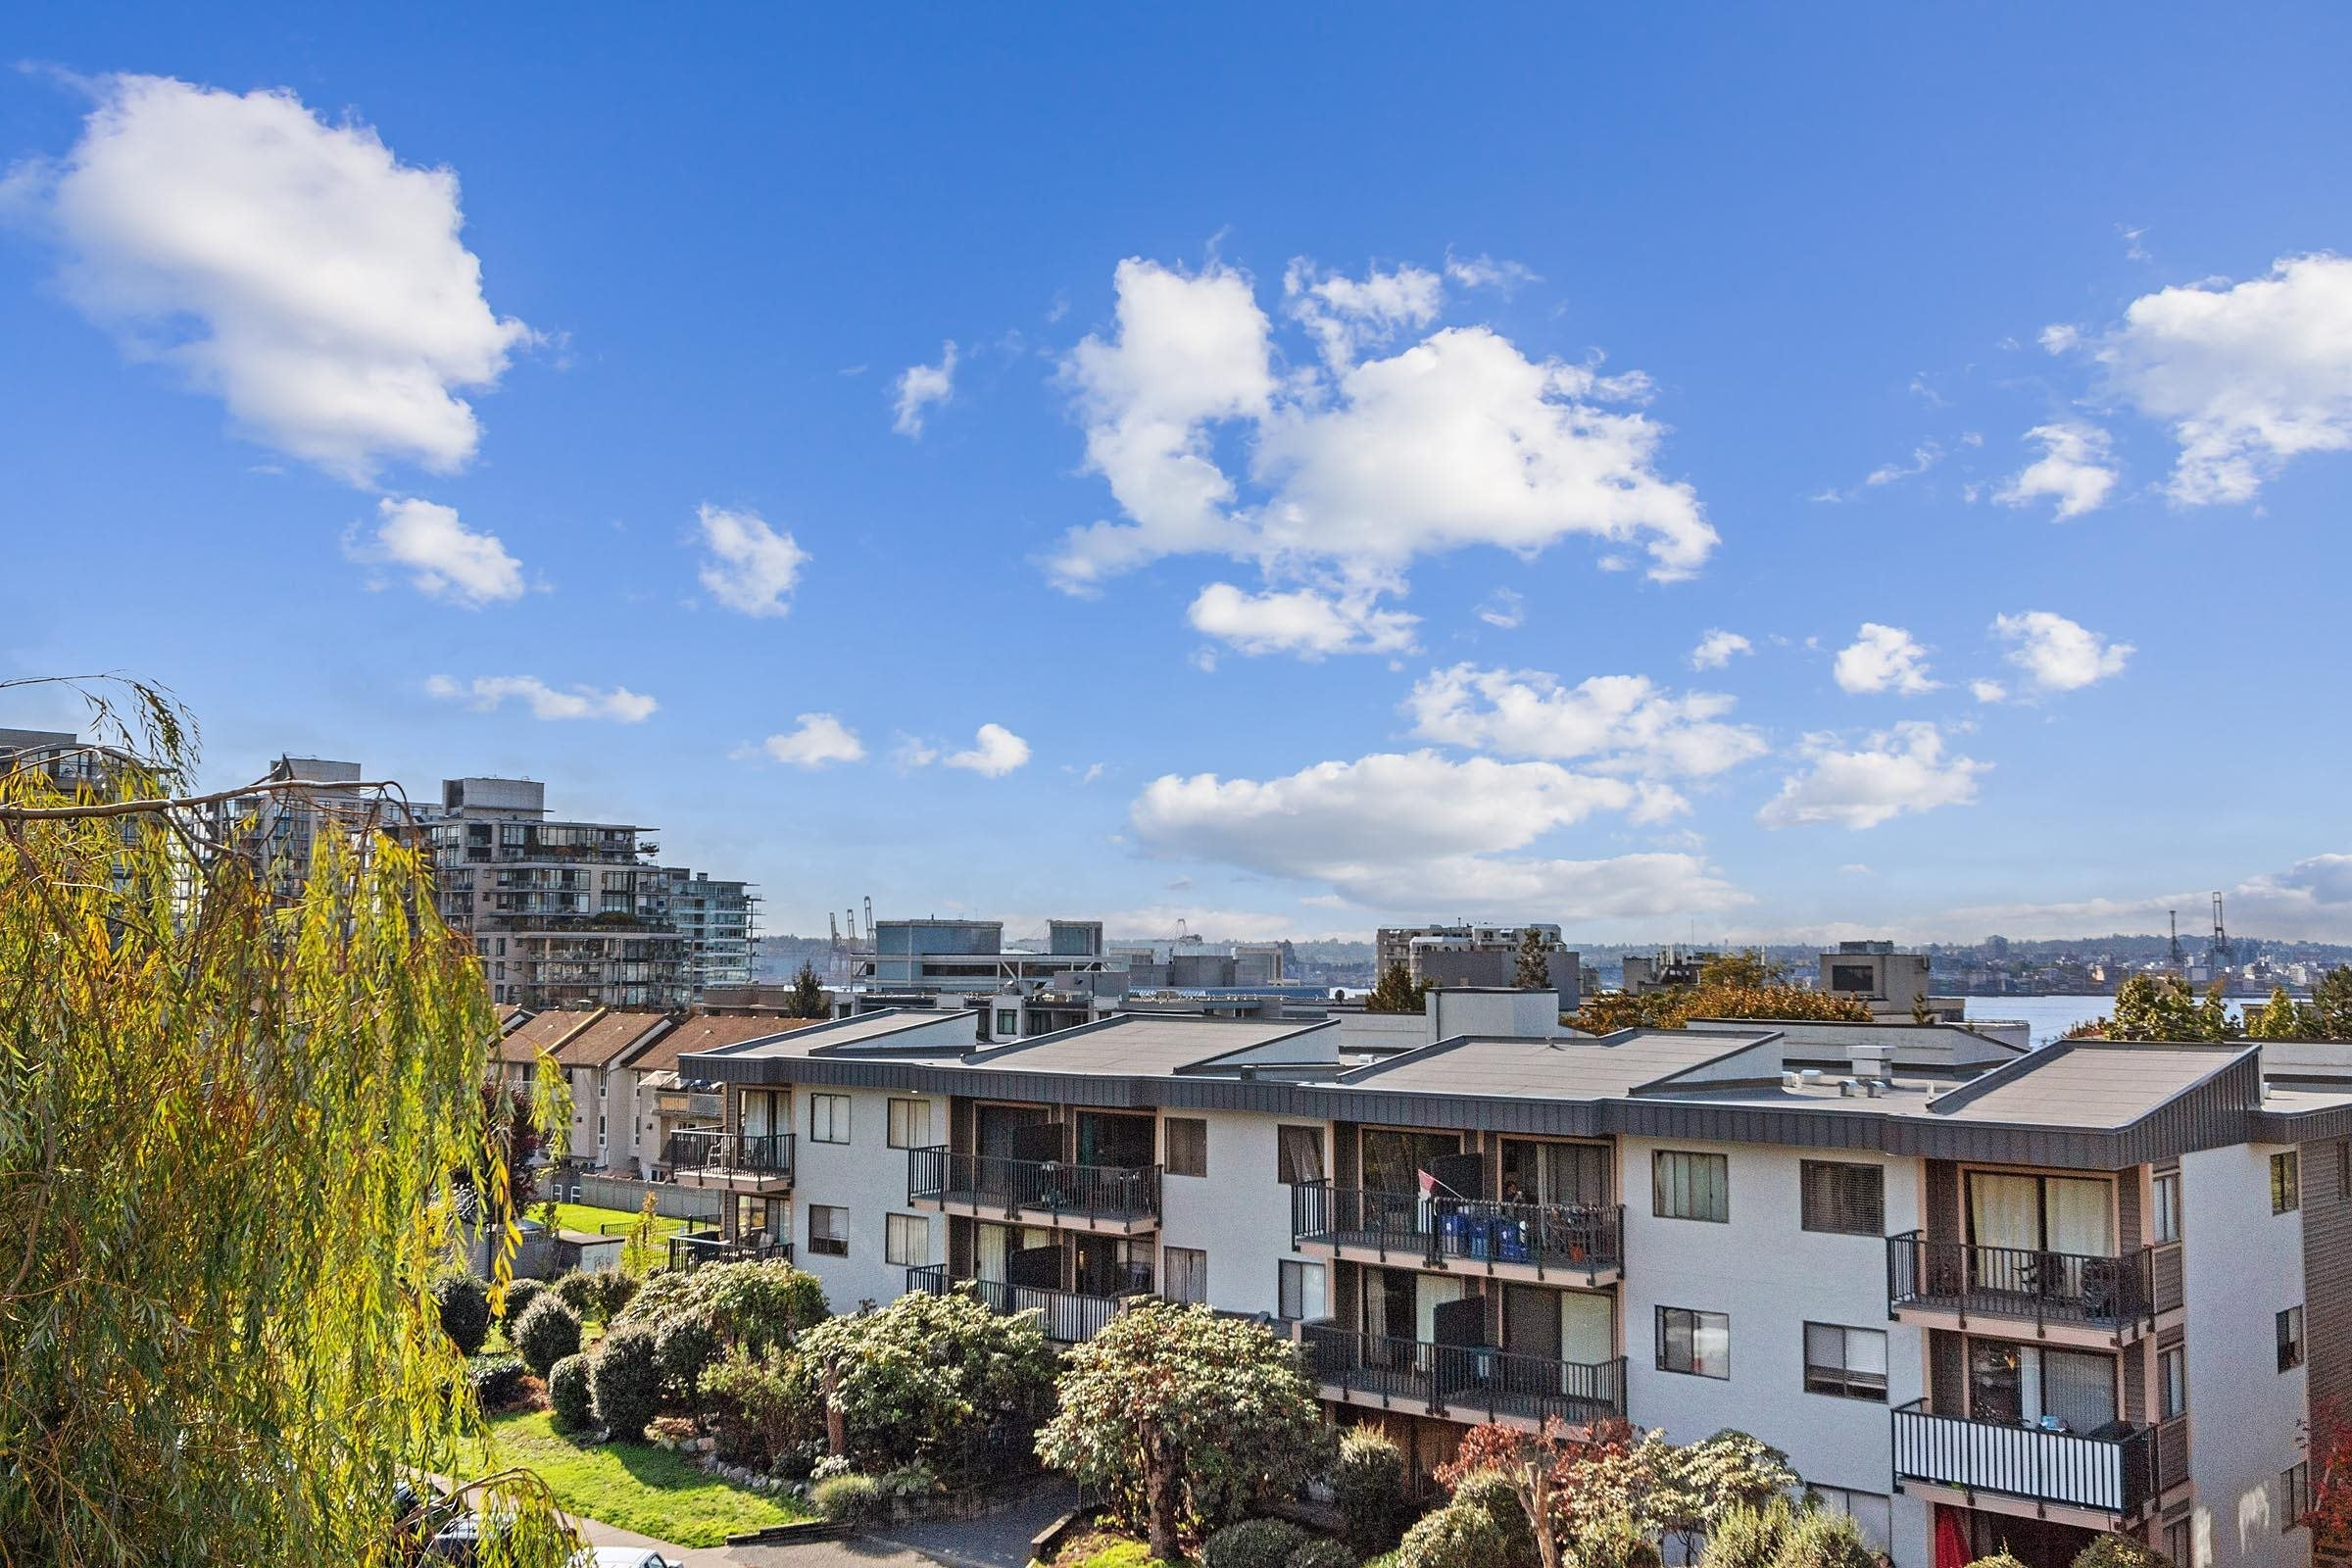 301 264 W 2ND STREET - Lower Lonsdale Apartment/Condo for sale, 2 Bedrooms (R2625527) - #20